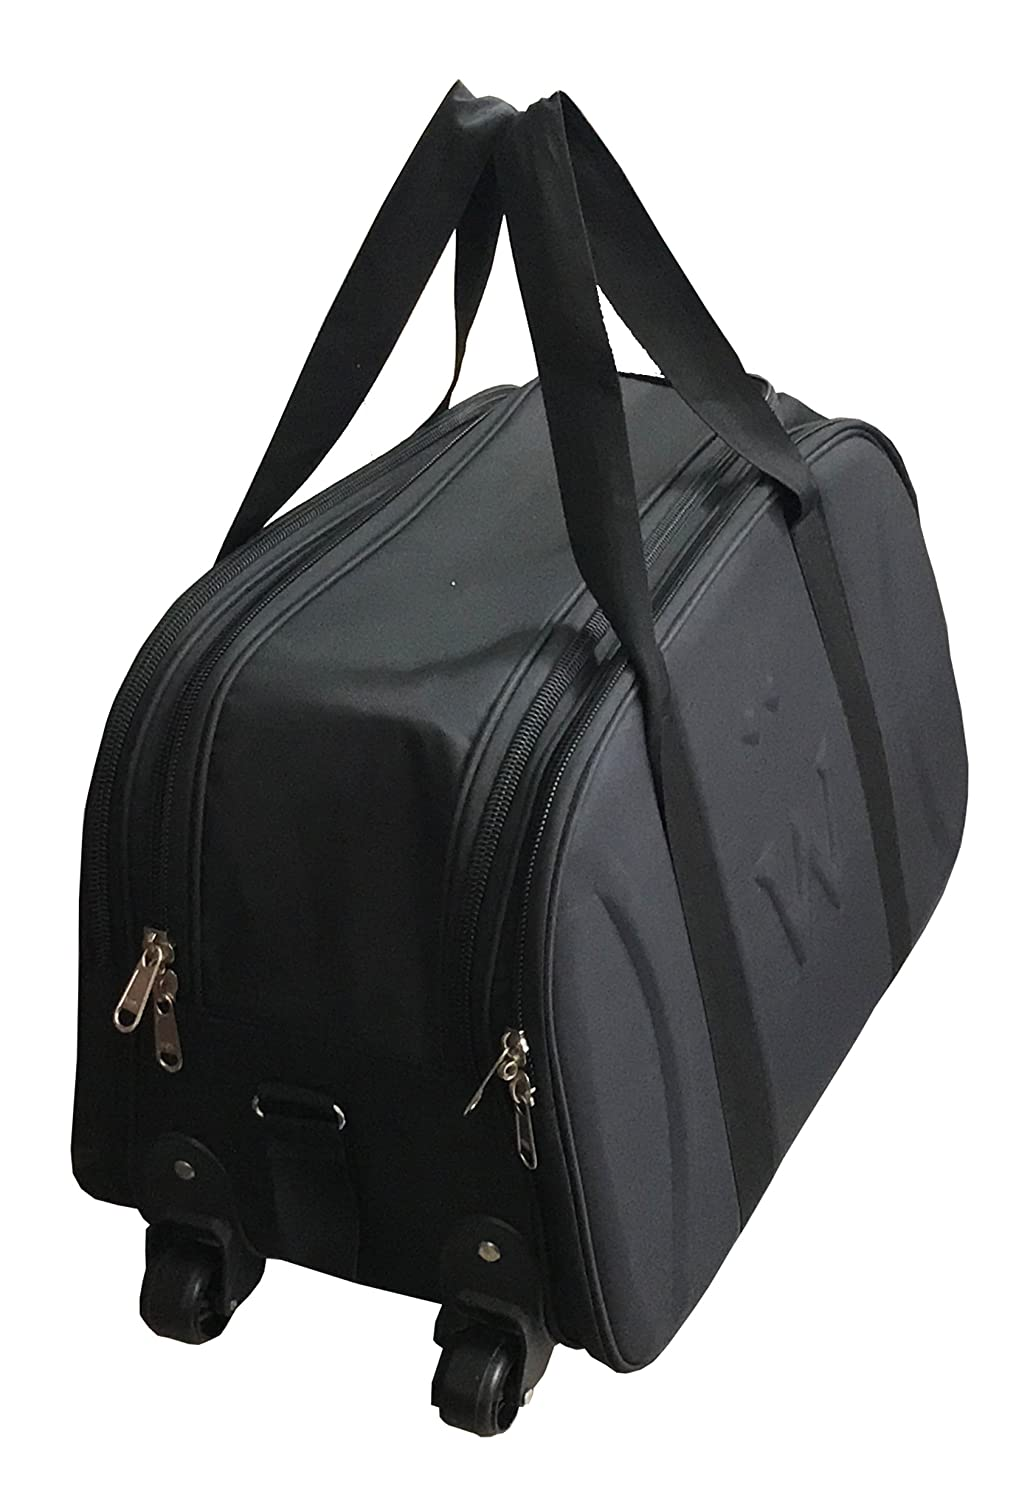 SEPAL Polyester Black Trolley Bag with Wheels